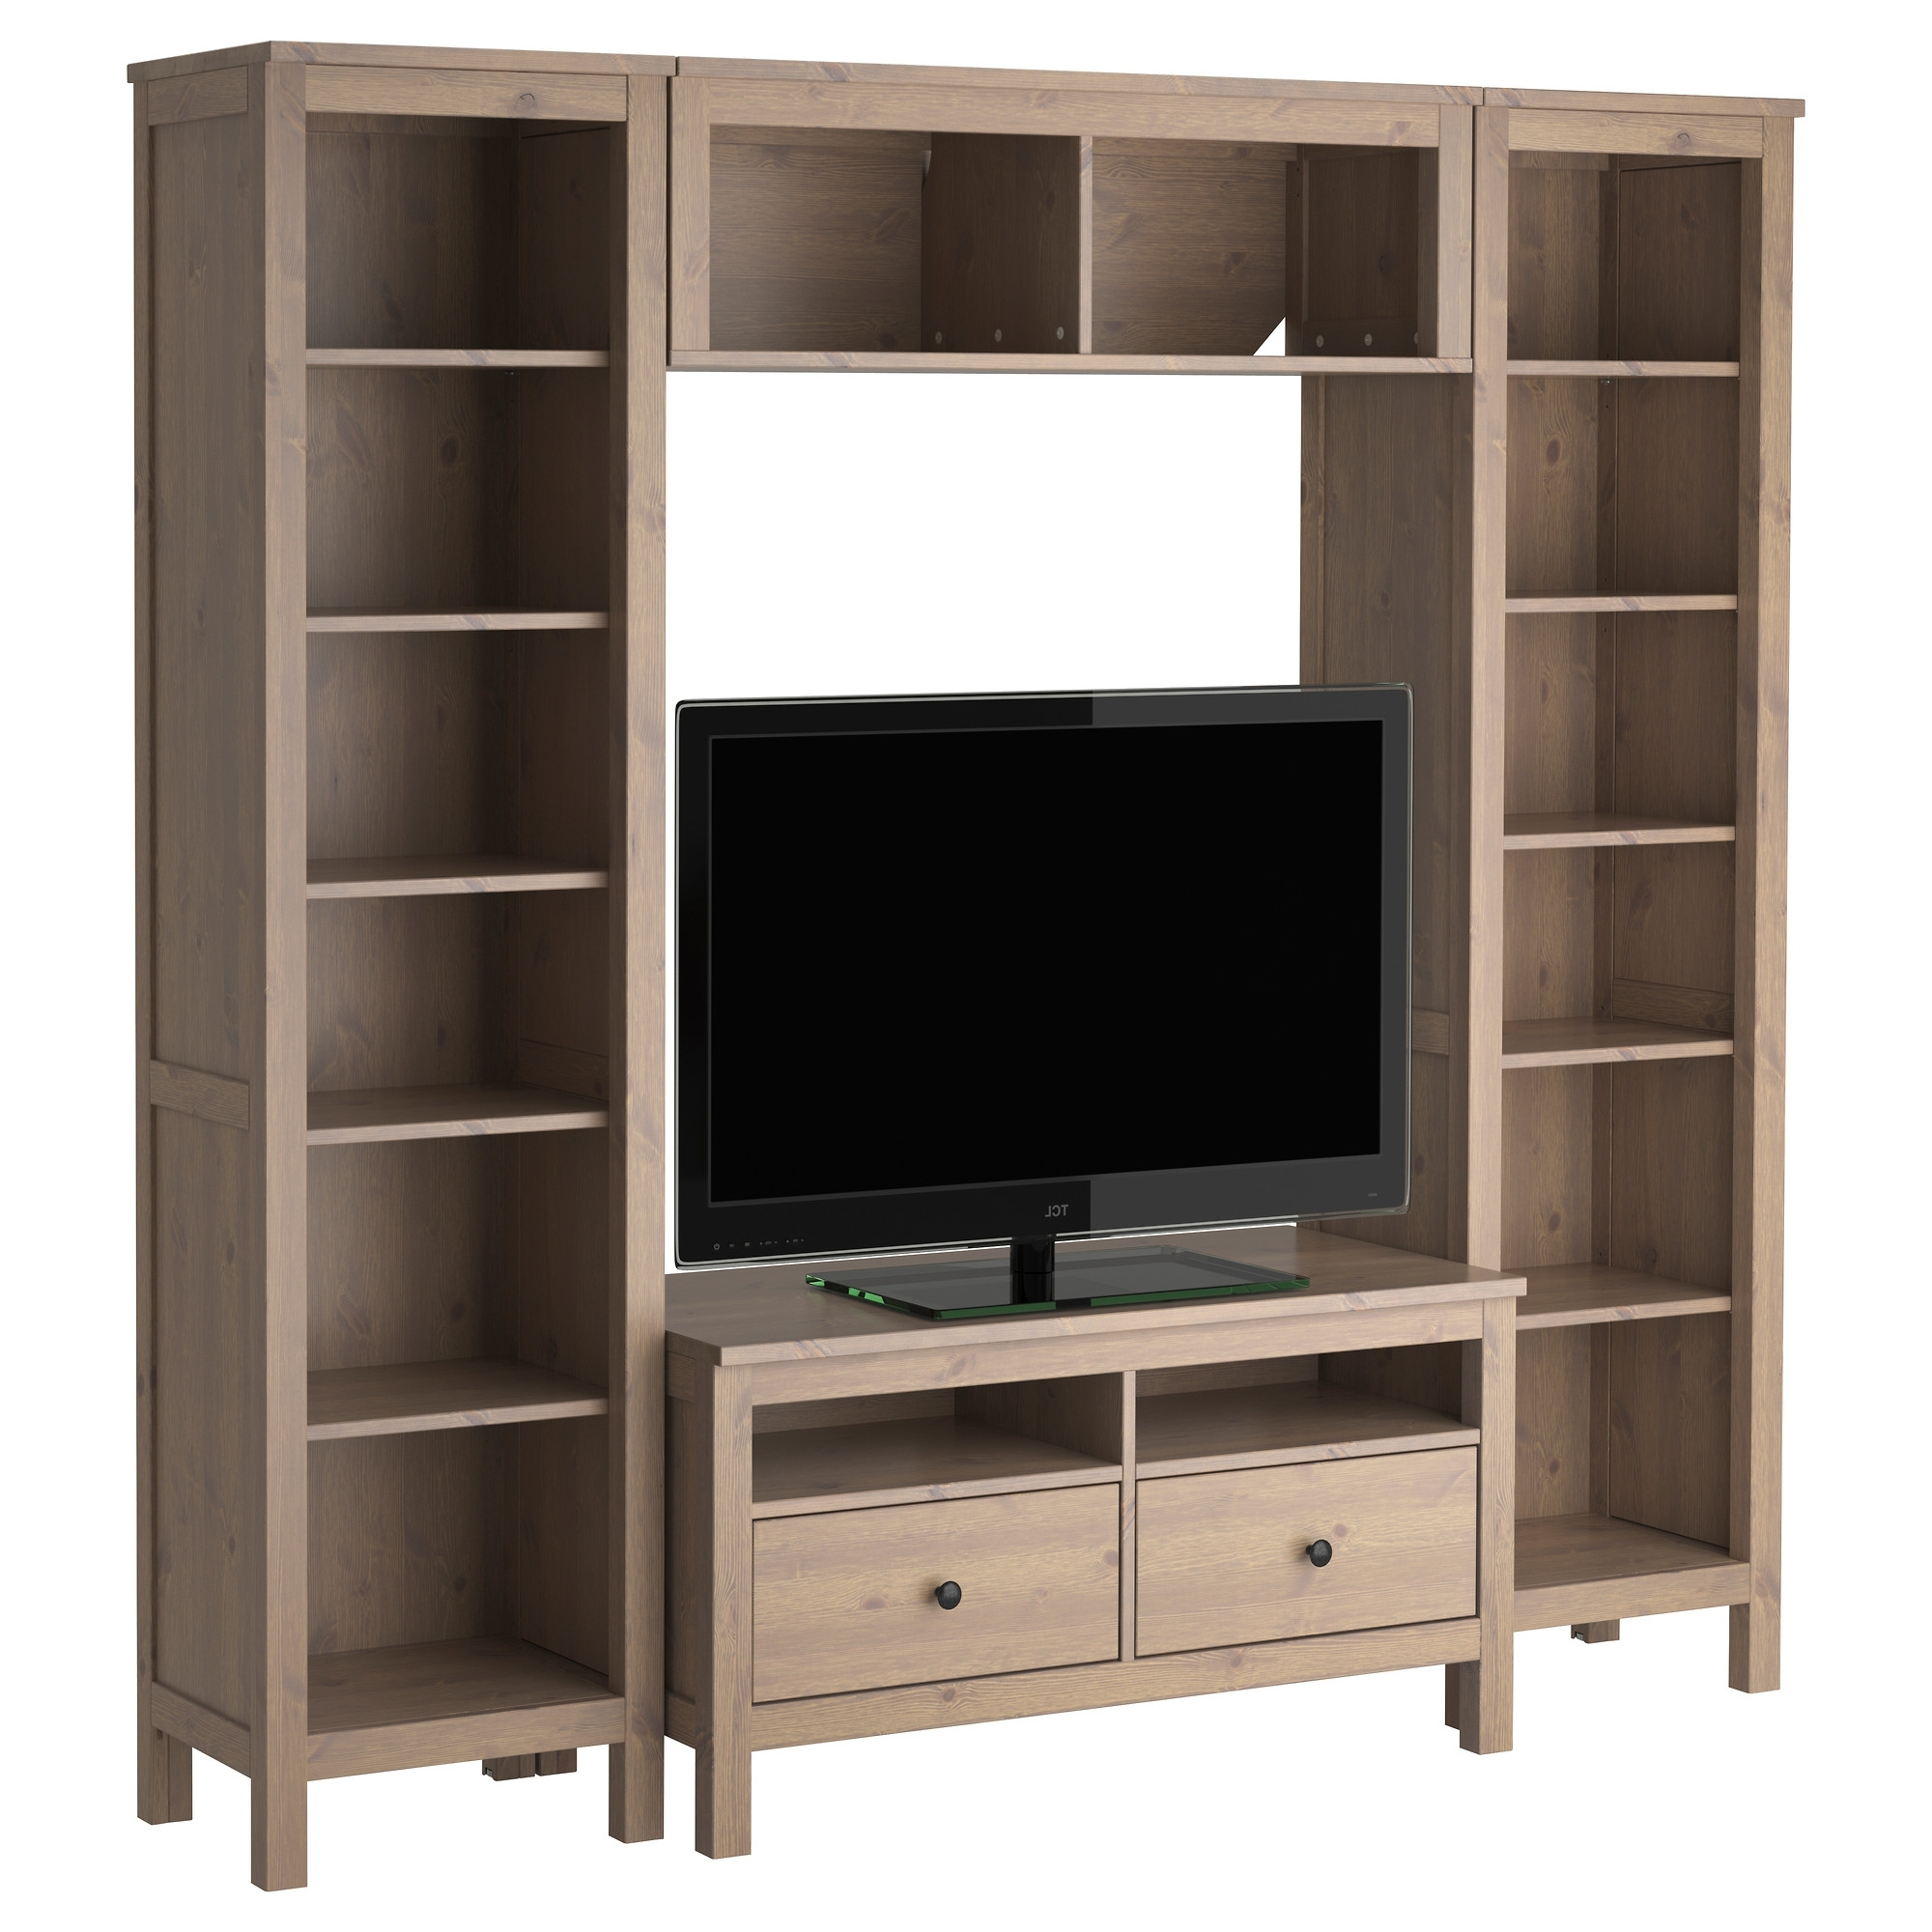 gallery of tv bookcases combination view 10 of 15 photos. Black Bedroom Furniture Sets. Home Design Ideas